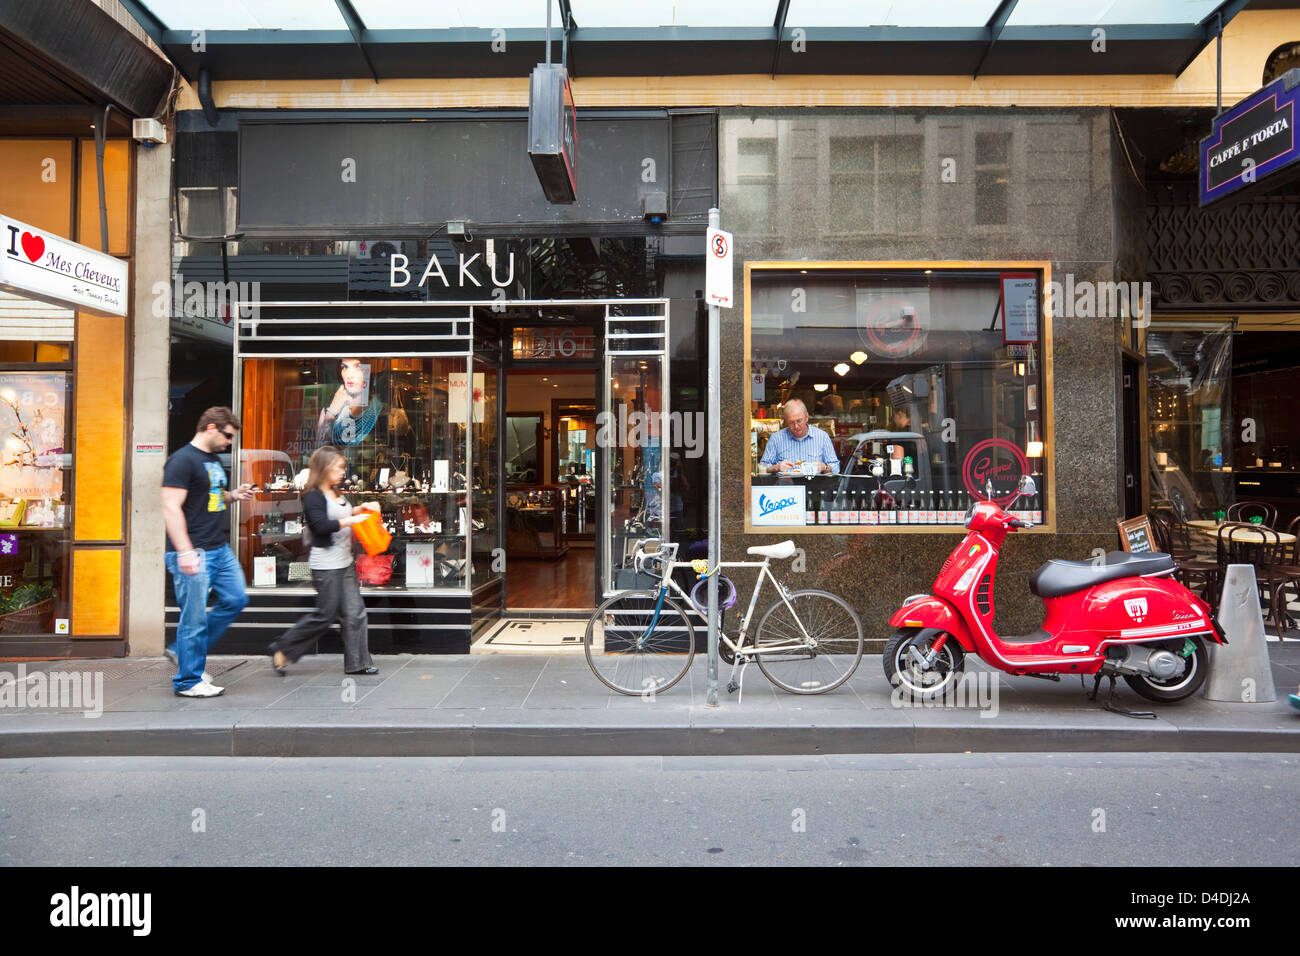 Cafes and shops on Little Collins Street. Melbourne, Victoria, Australia - Stock Image